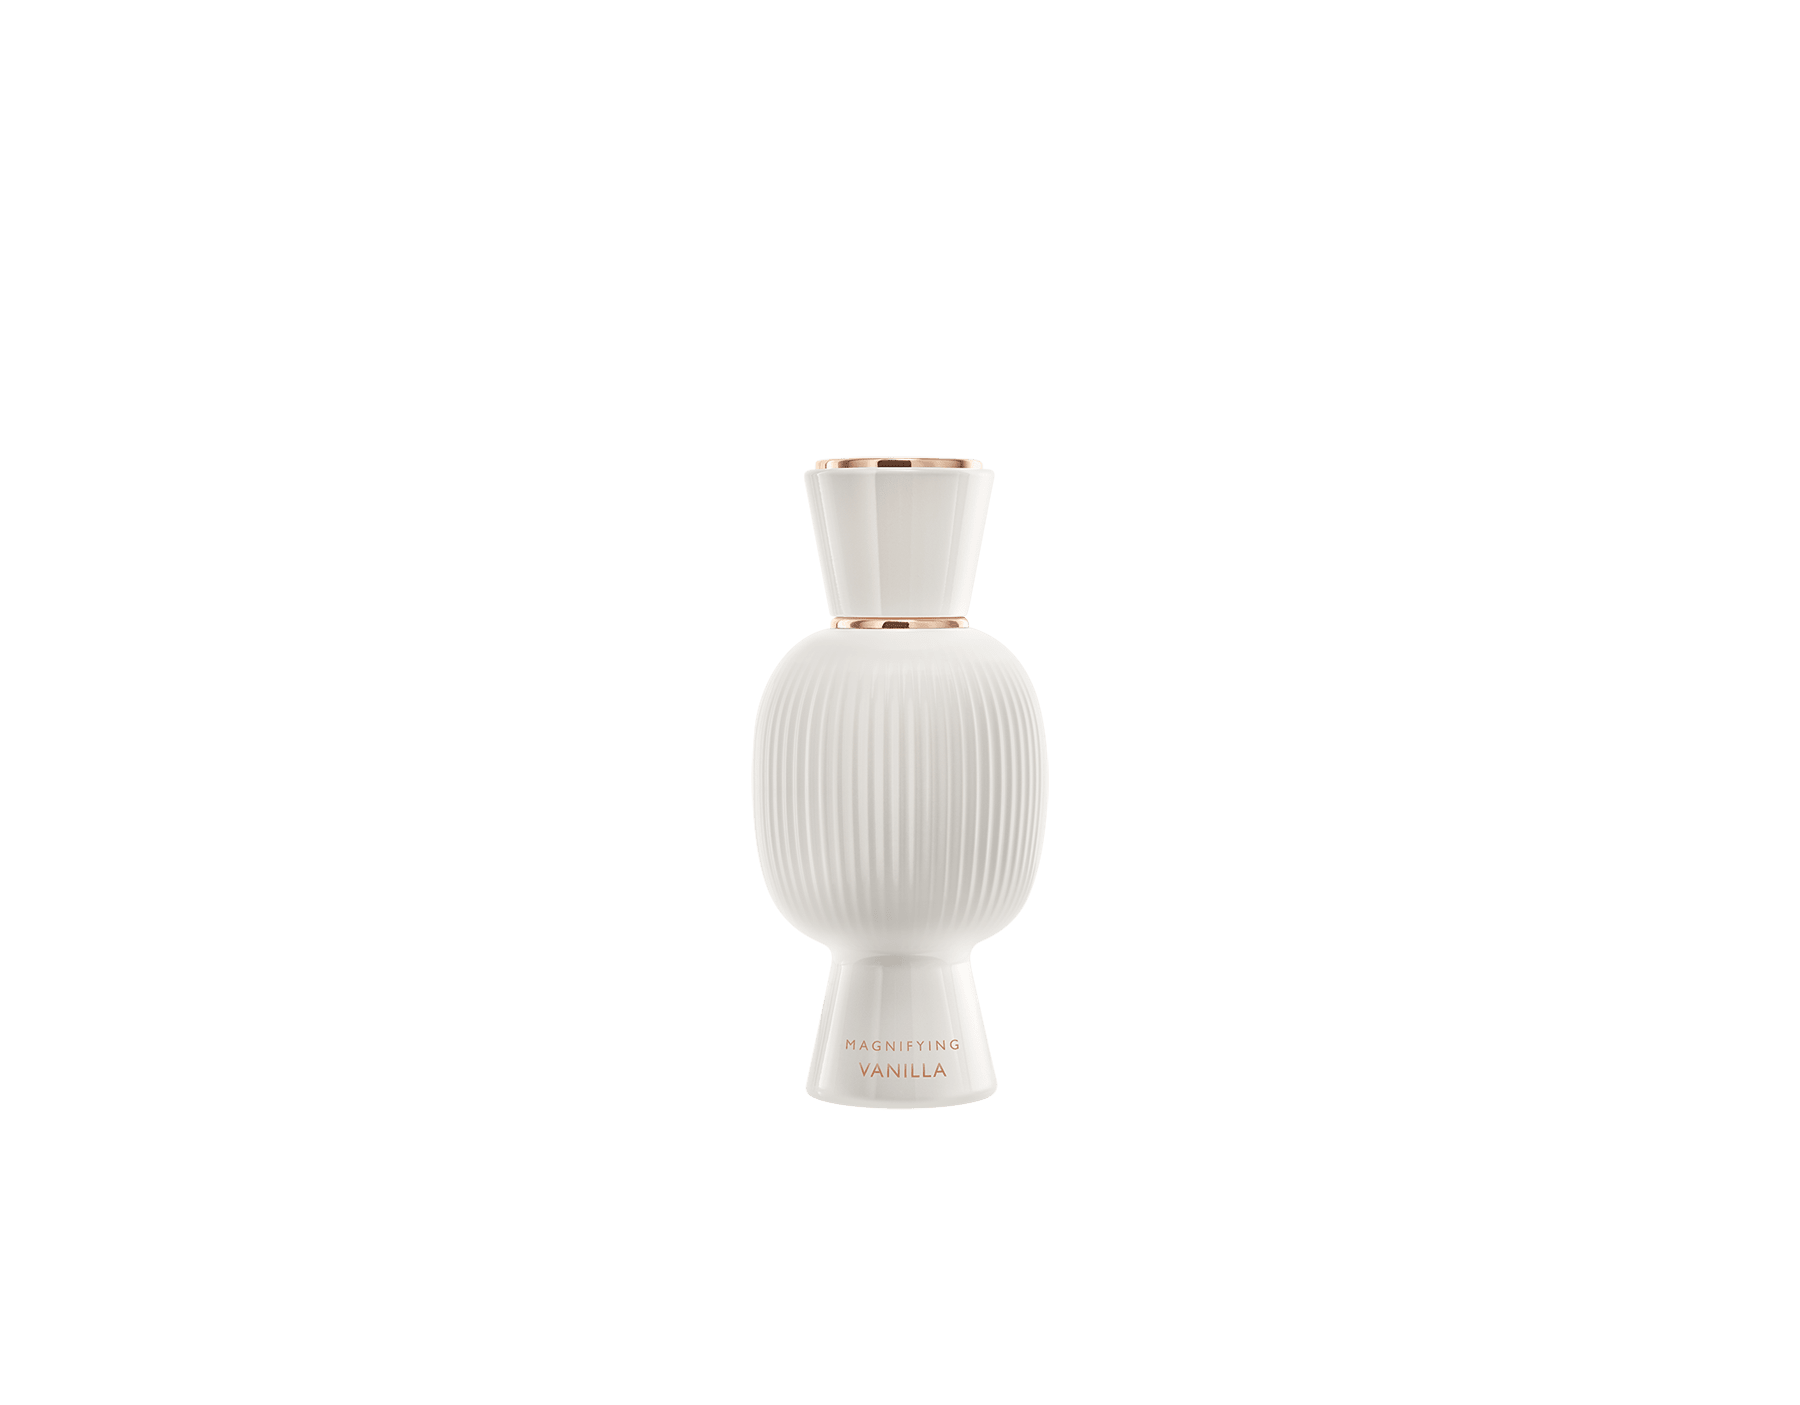 An exclusive perfume set, as bold and unique as you. The magnificent floral Fiori d'Amore Allegra Eau de Parfum blends with the addictive aroma of the Magnifying Vanilla Essence, creating an irresistible personalised women's perfume. Perfume-Set-Fiori-d-Amore-Eau-de-Parfum-and-Vanilla-Magnifying image 3